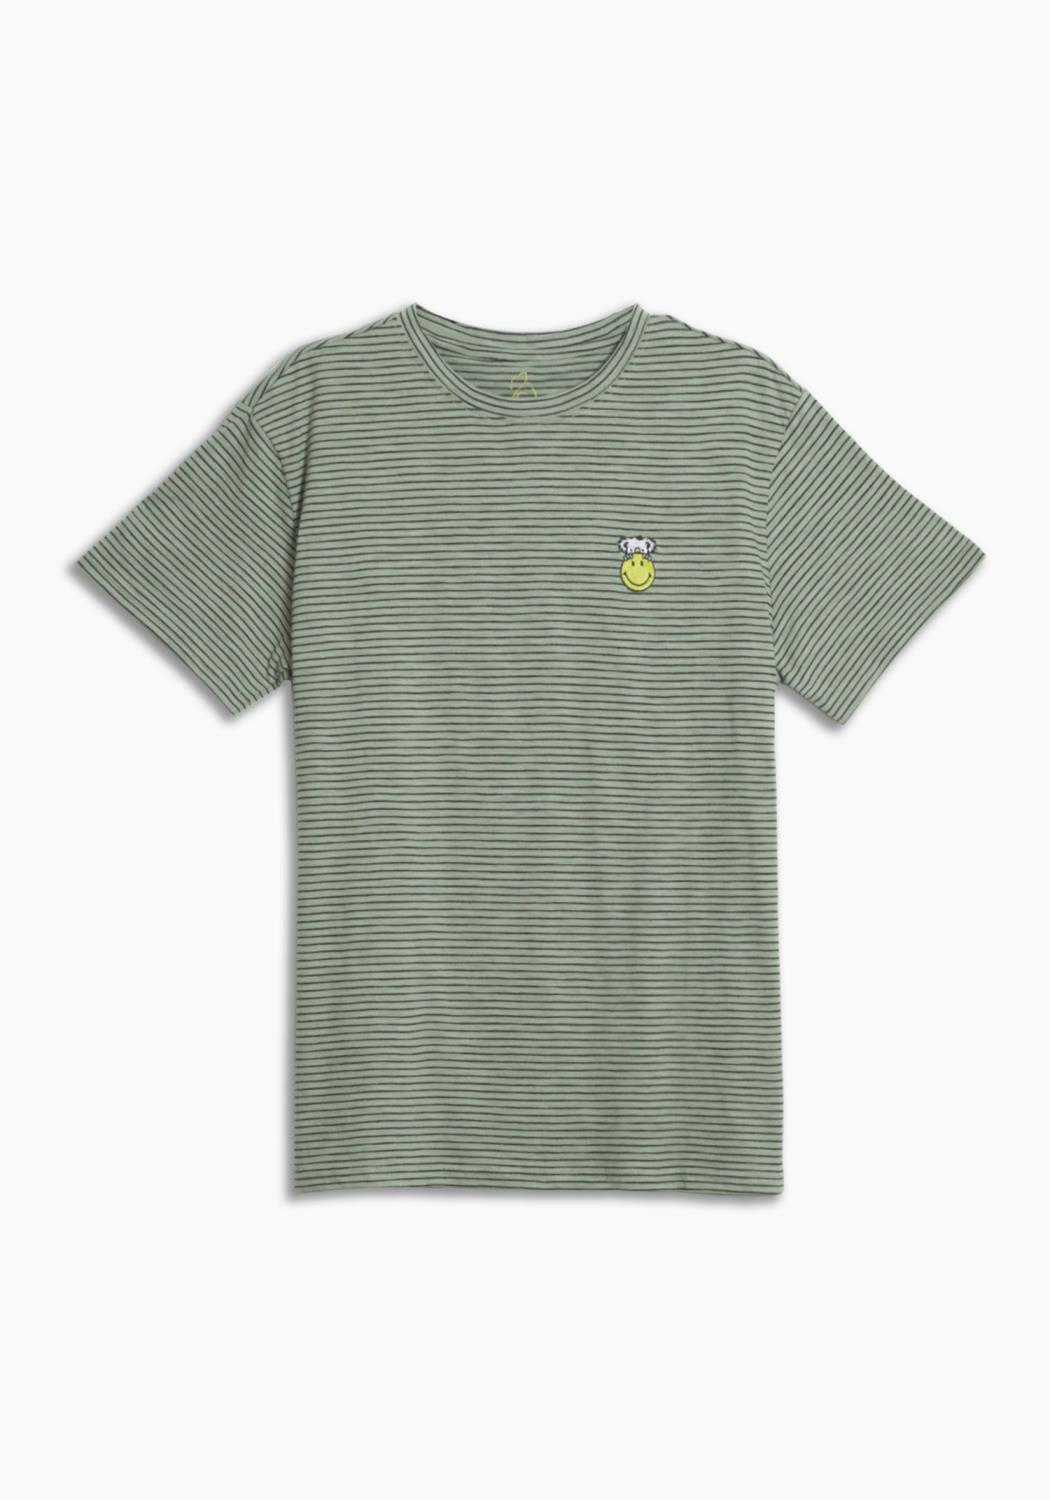 KUWALLA X SMILEY STRIPED TEE